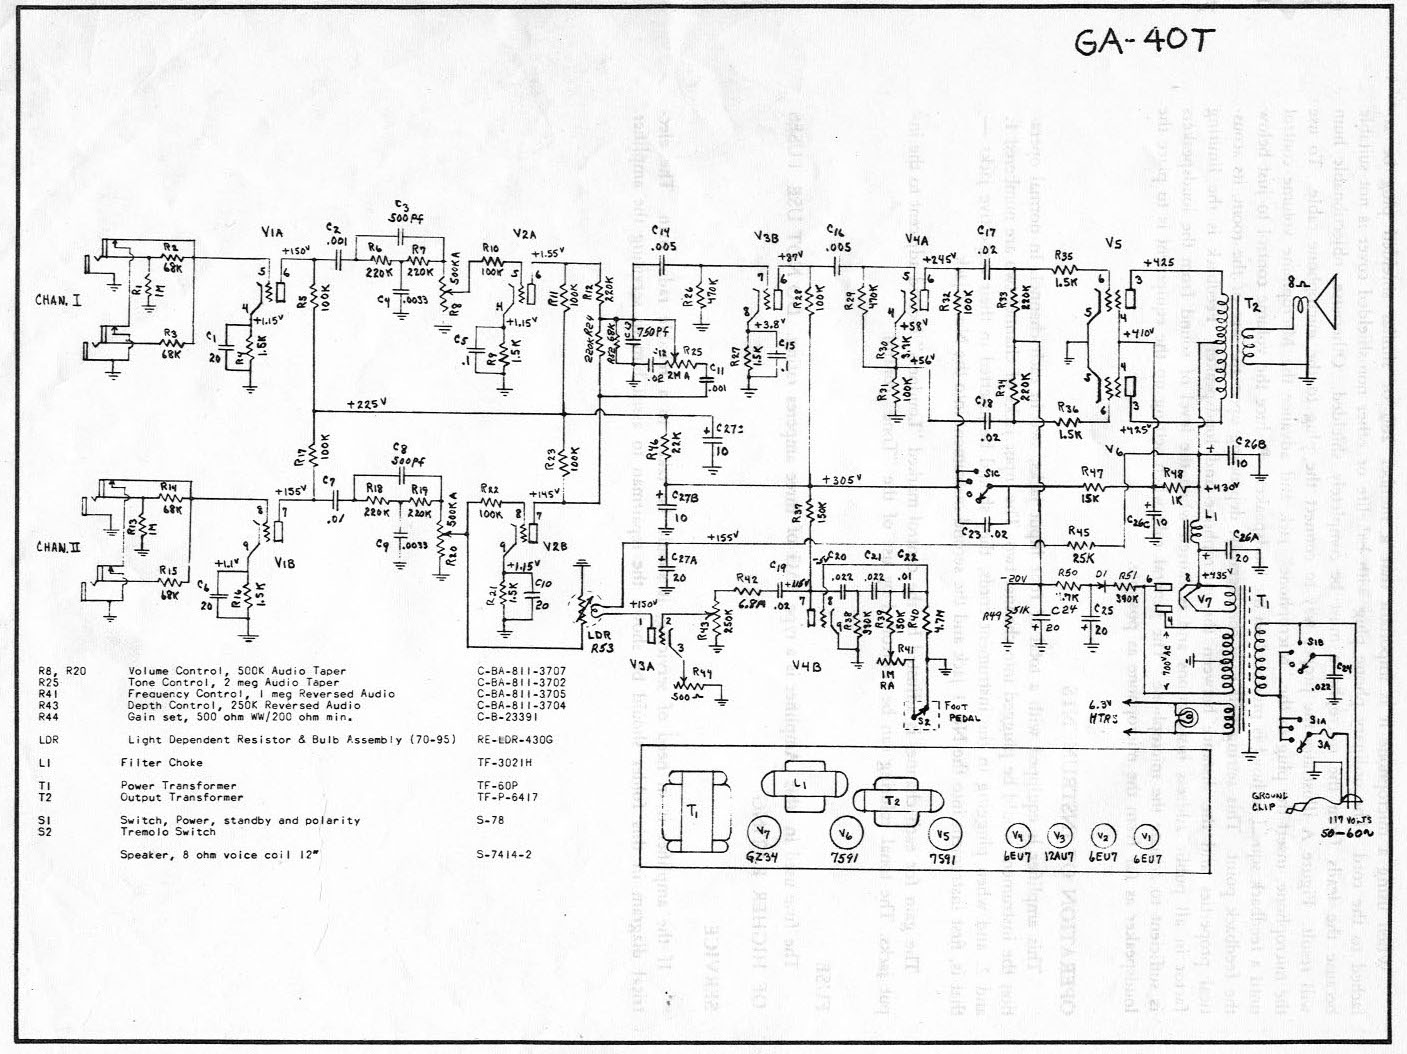 Gibson Les Paul Drawing At Free For Personal Use 50s Wiring Diagram 648x497 Original Epiphone Guitar Wirirng Diagrams 2 Pick 1407x1054 Schematics